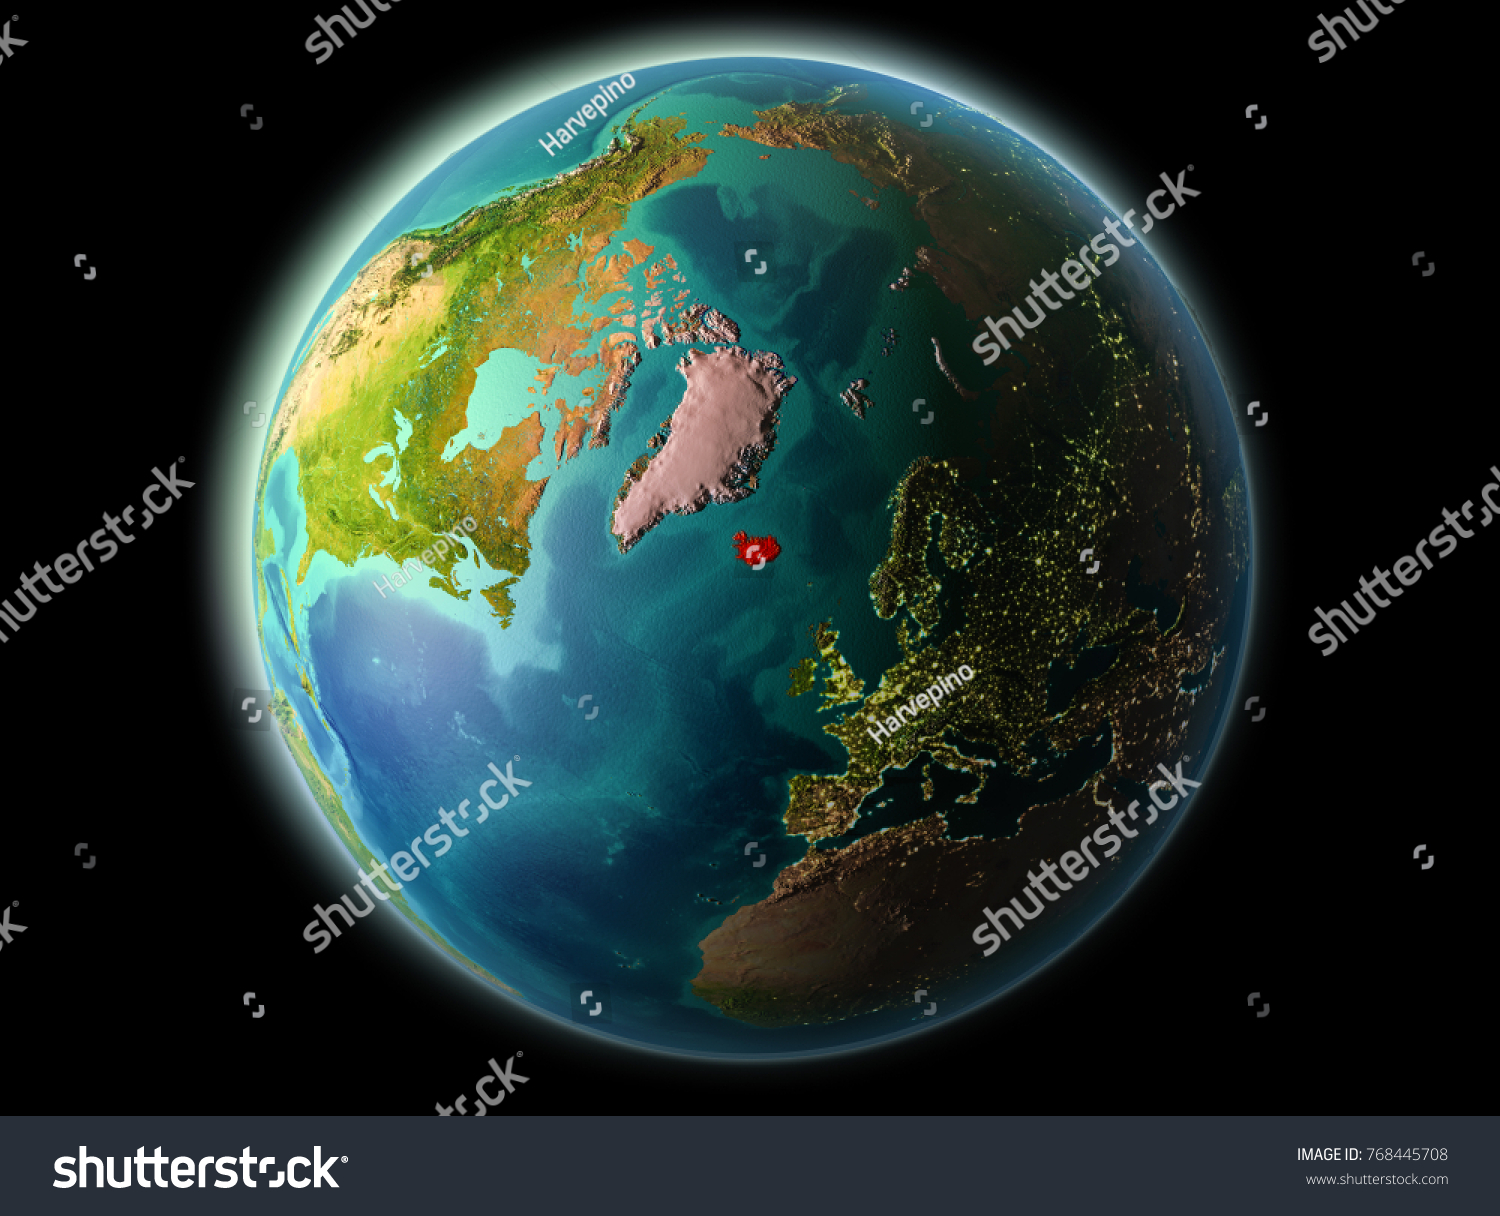 Iceland orbit planet earth night highly stock illustration 768445708 iceland from orbit of planet earth at night with highly detailed surface textures 3d illustration gumiabroncs Gallery